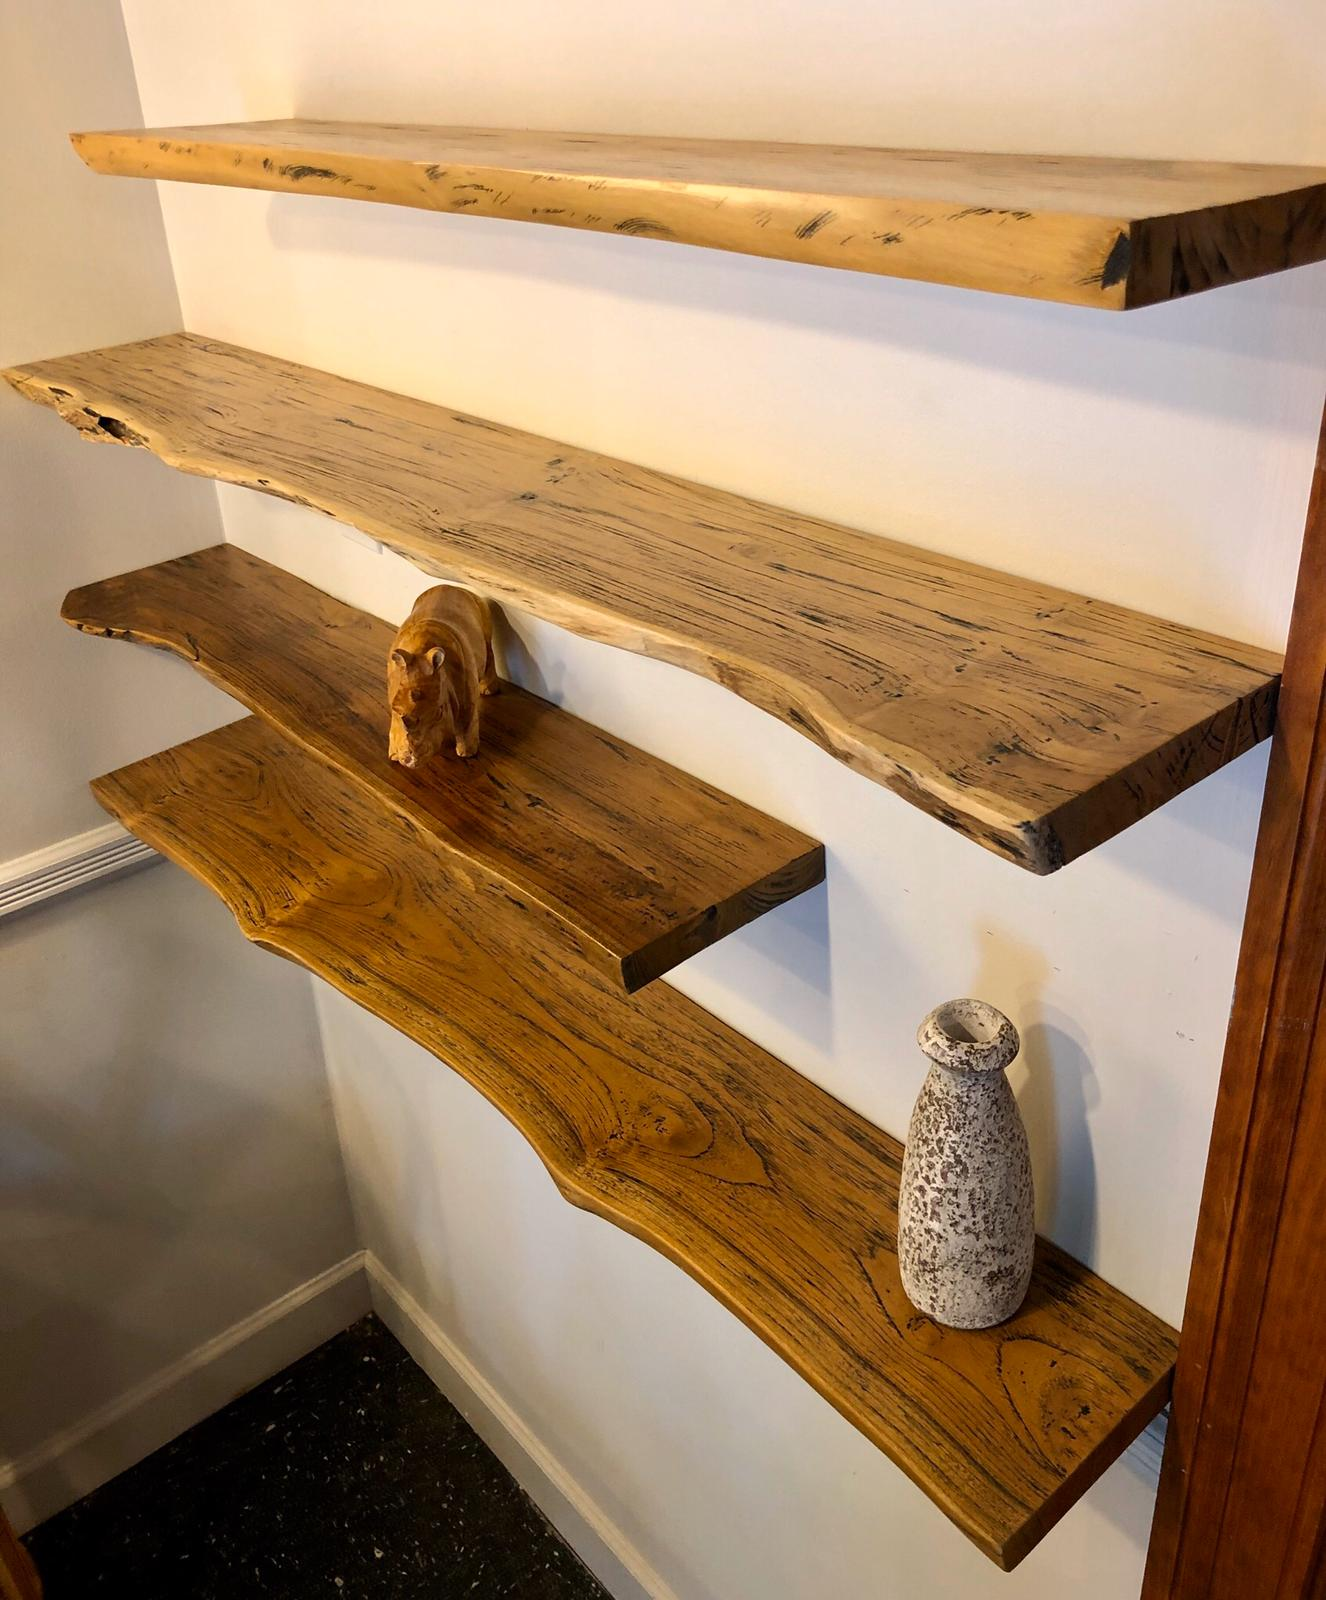 Rustic live edge solid teak wood floating shelf with hardware 47.25